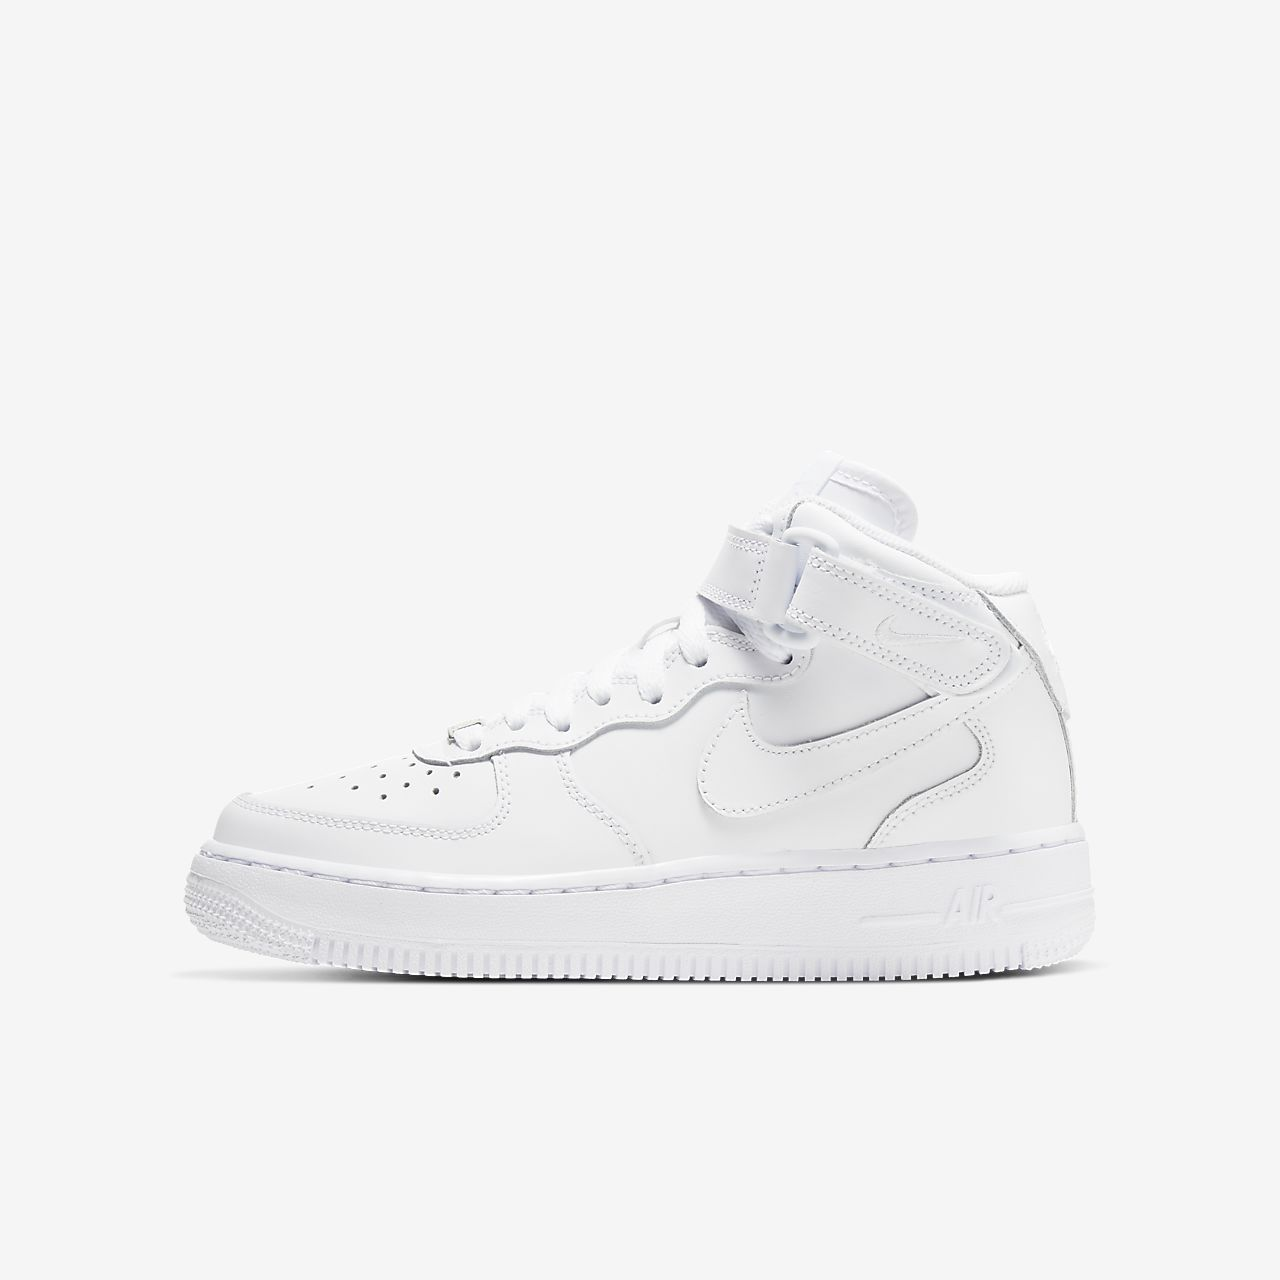 0bfe131c8 Nike Air Force 1 Mid 06 Big Kids' Shoe. Nike.com